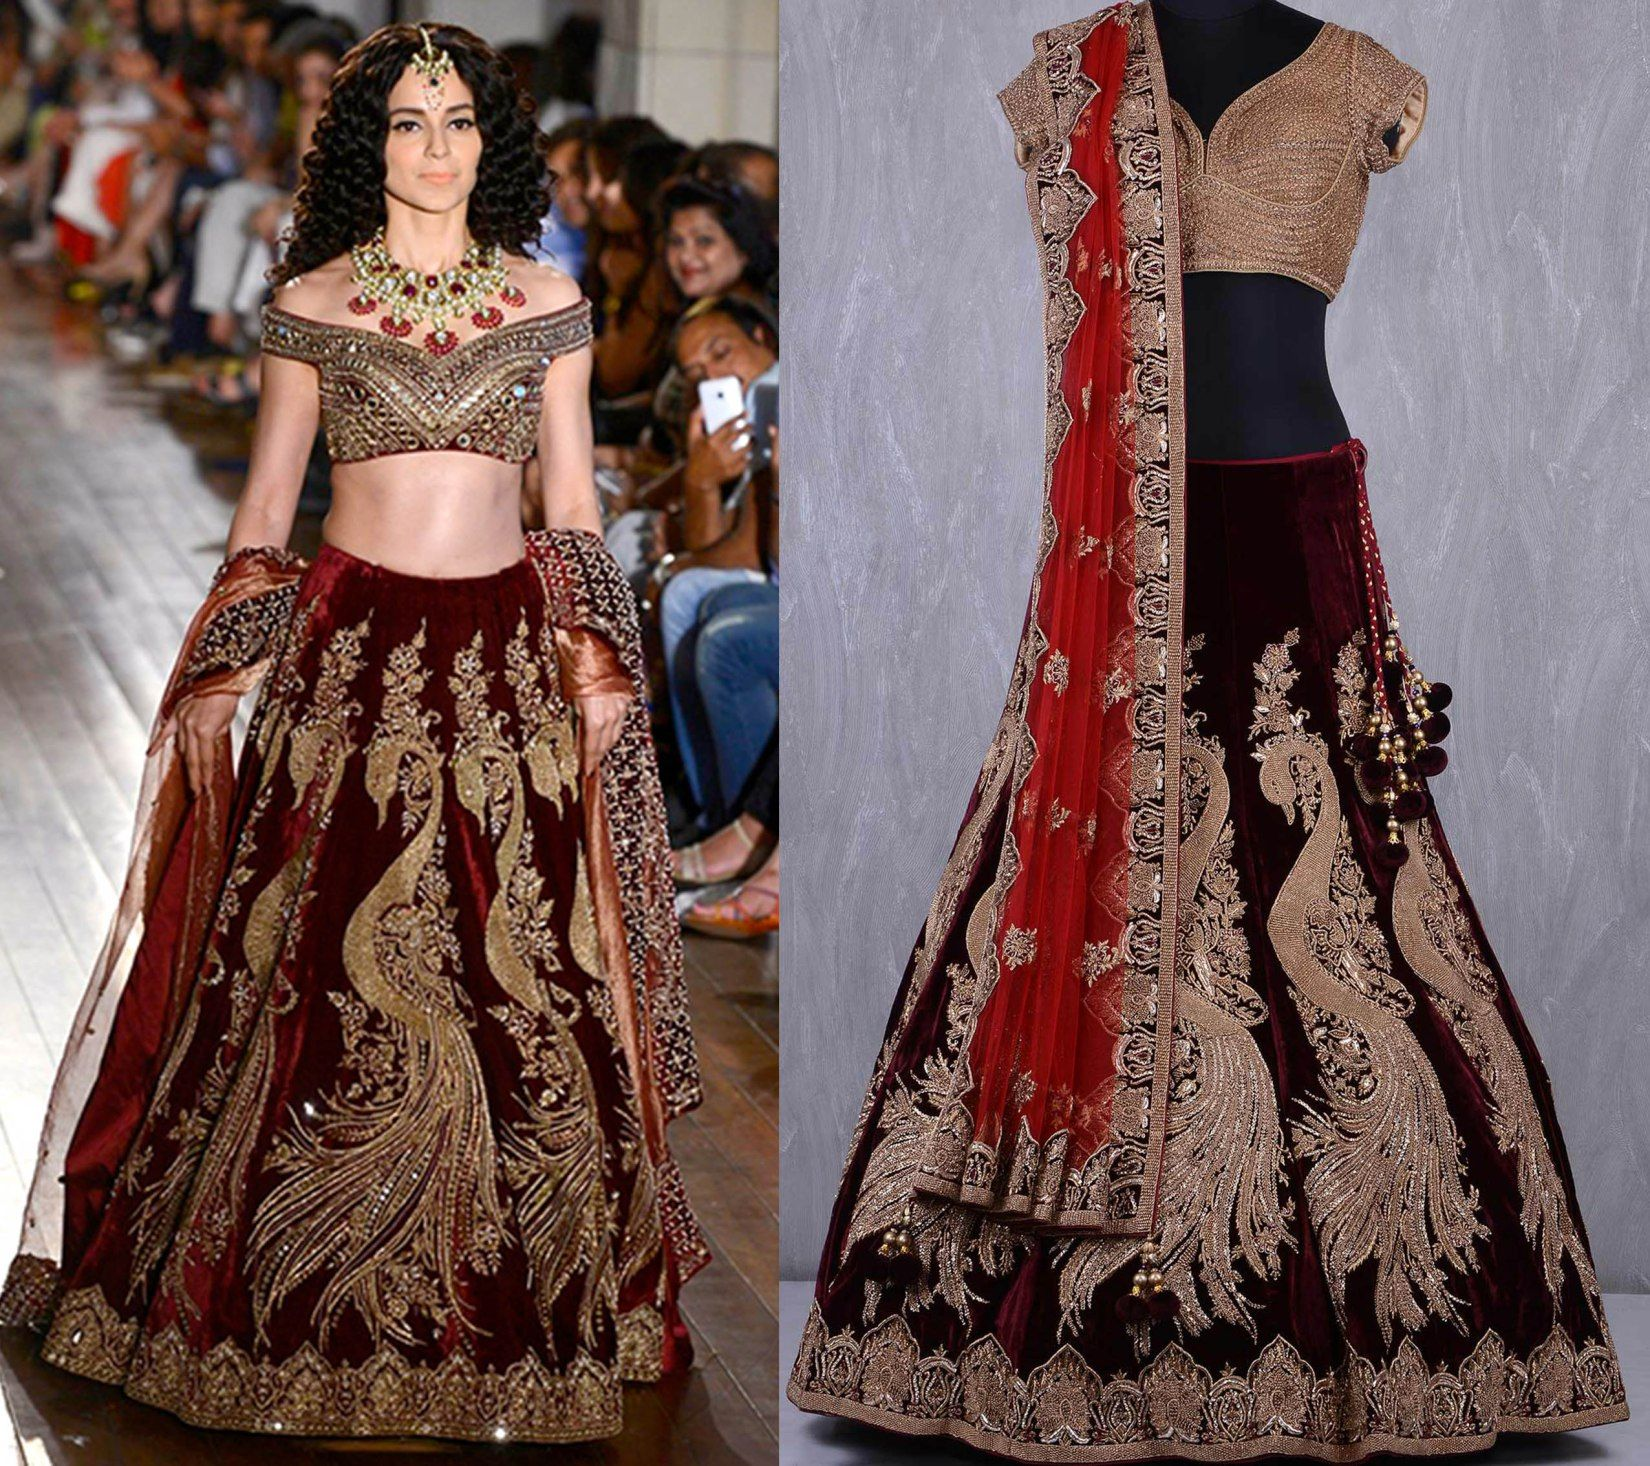 bab4ff20d Maroon velvet embroidered lehenga from Manav gangwani with peacock  embroidery.  lehenga  bridallehenga  weddinglehenga  circular  indowestern   rawsilk ...